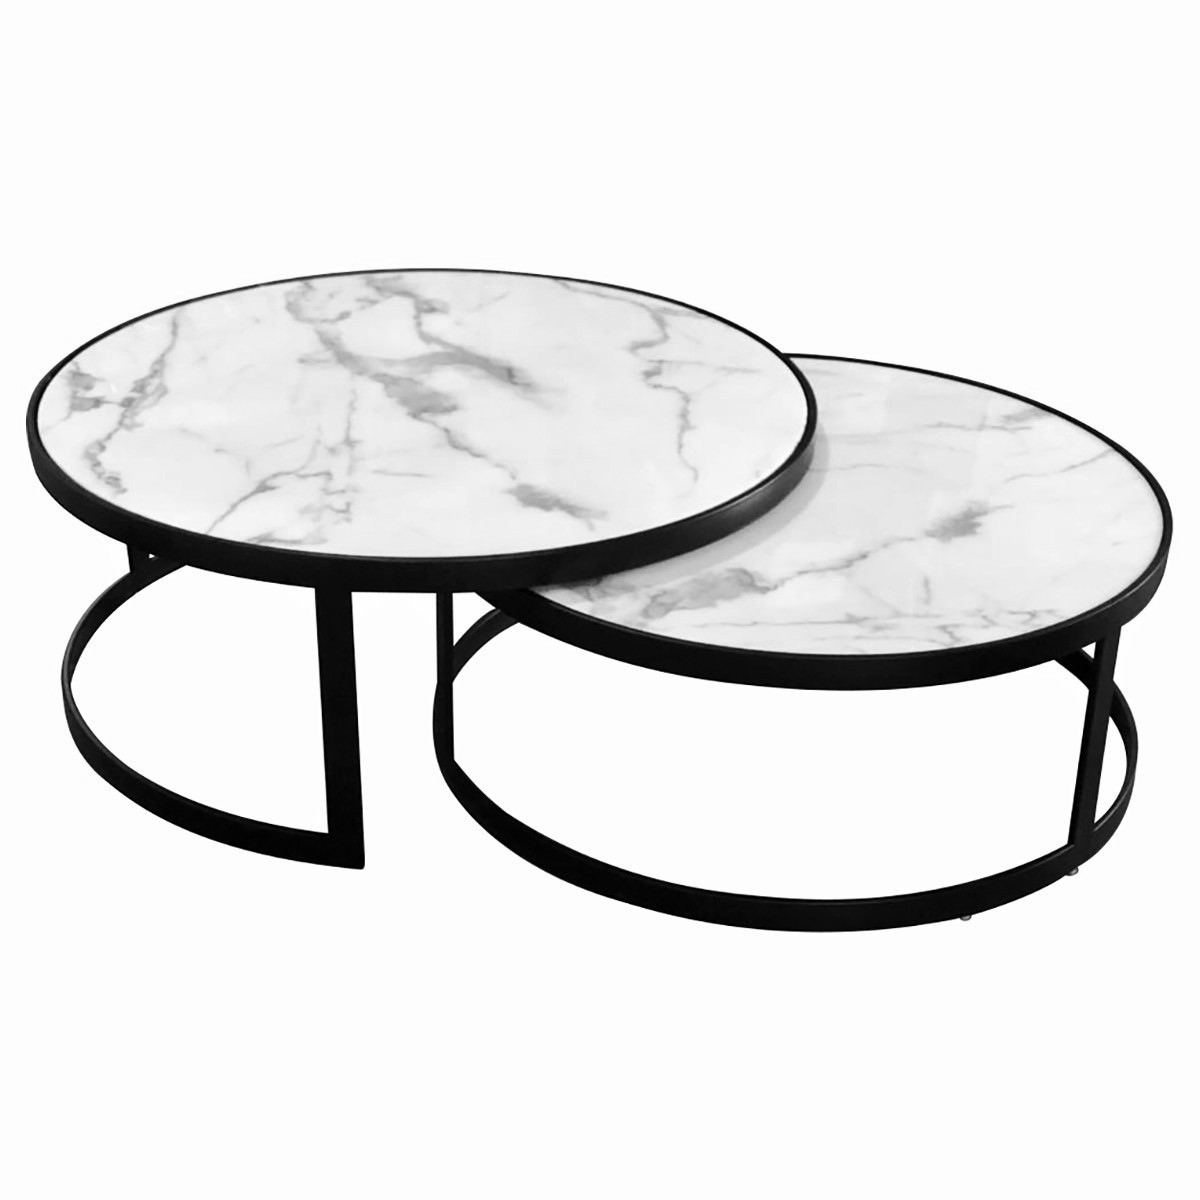 Mirabello 2 Piece Faux Marble Topped Metal Round Nesting Coffee Table Set, White / Black